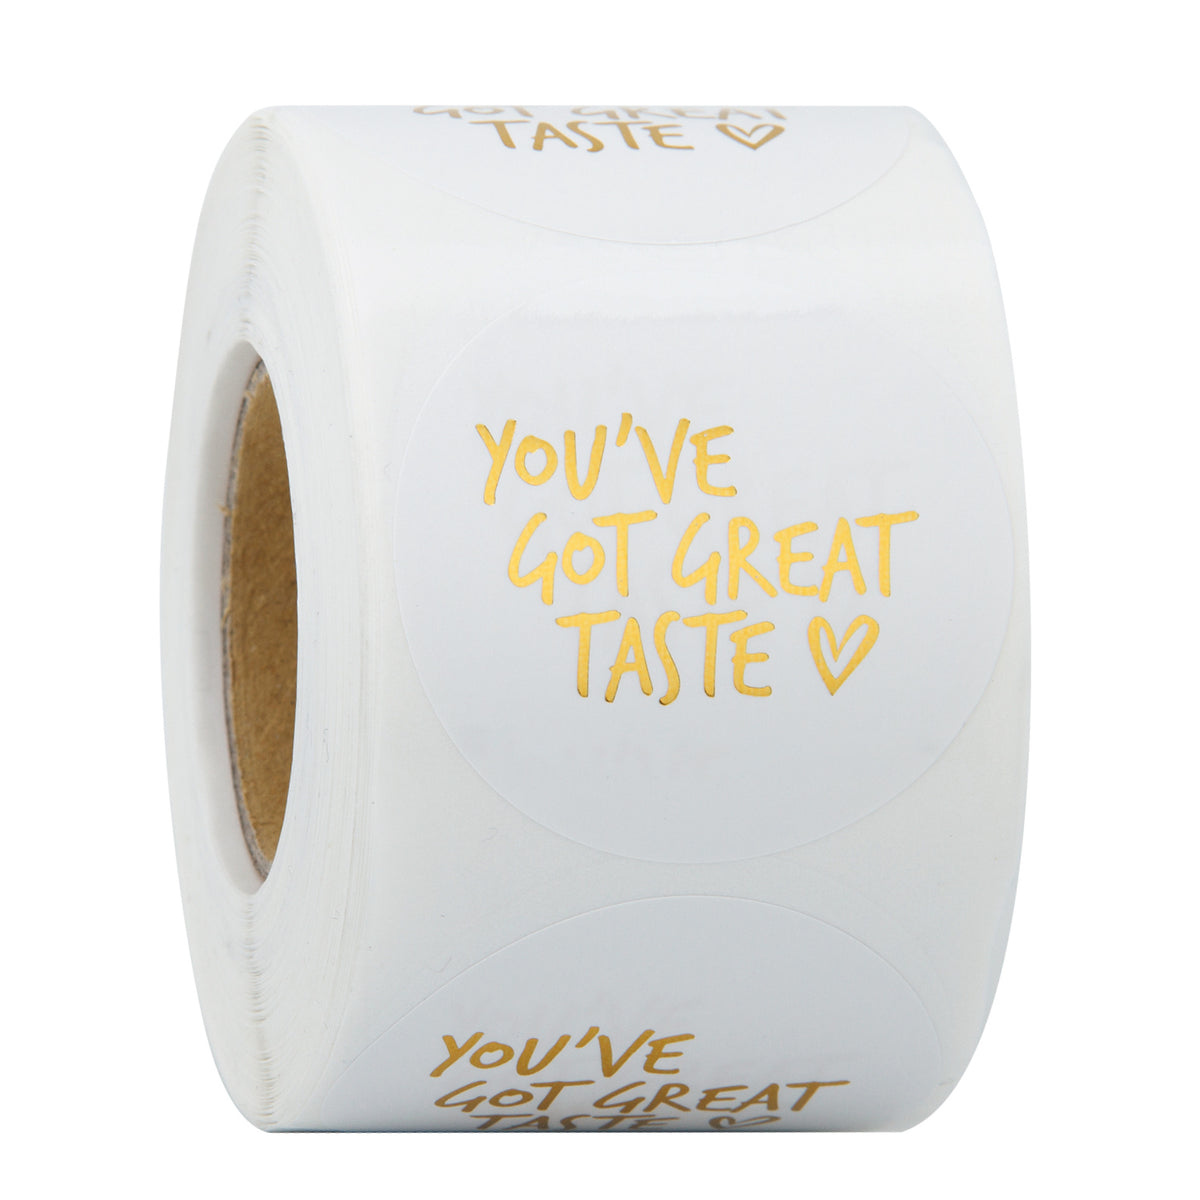 Wrapaholic You've Got Great Taste Stickers - Gold Foil Business Thank You Stickers, Shipping Stickers - 2 x 2 Inch 500 Total Labels